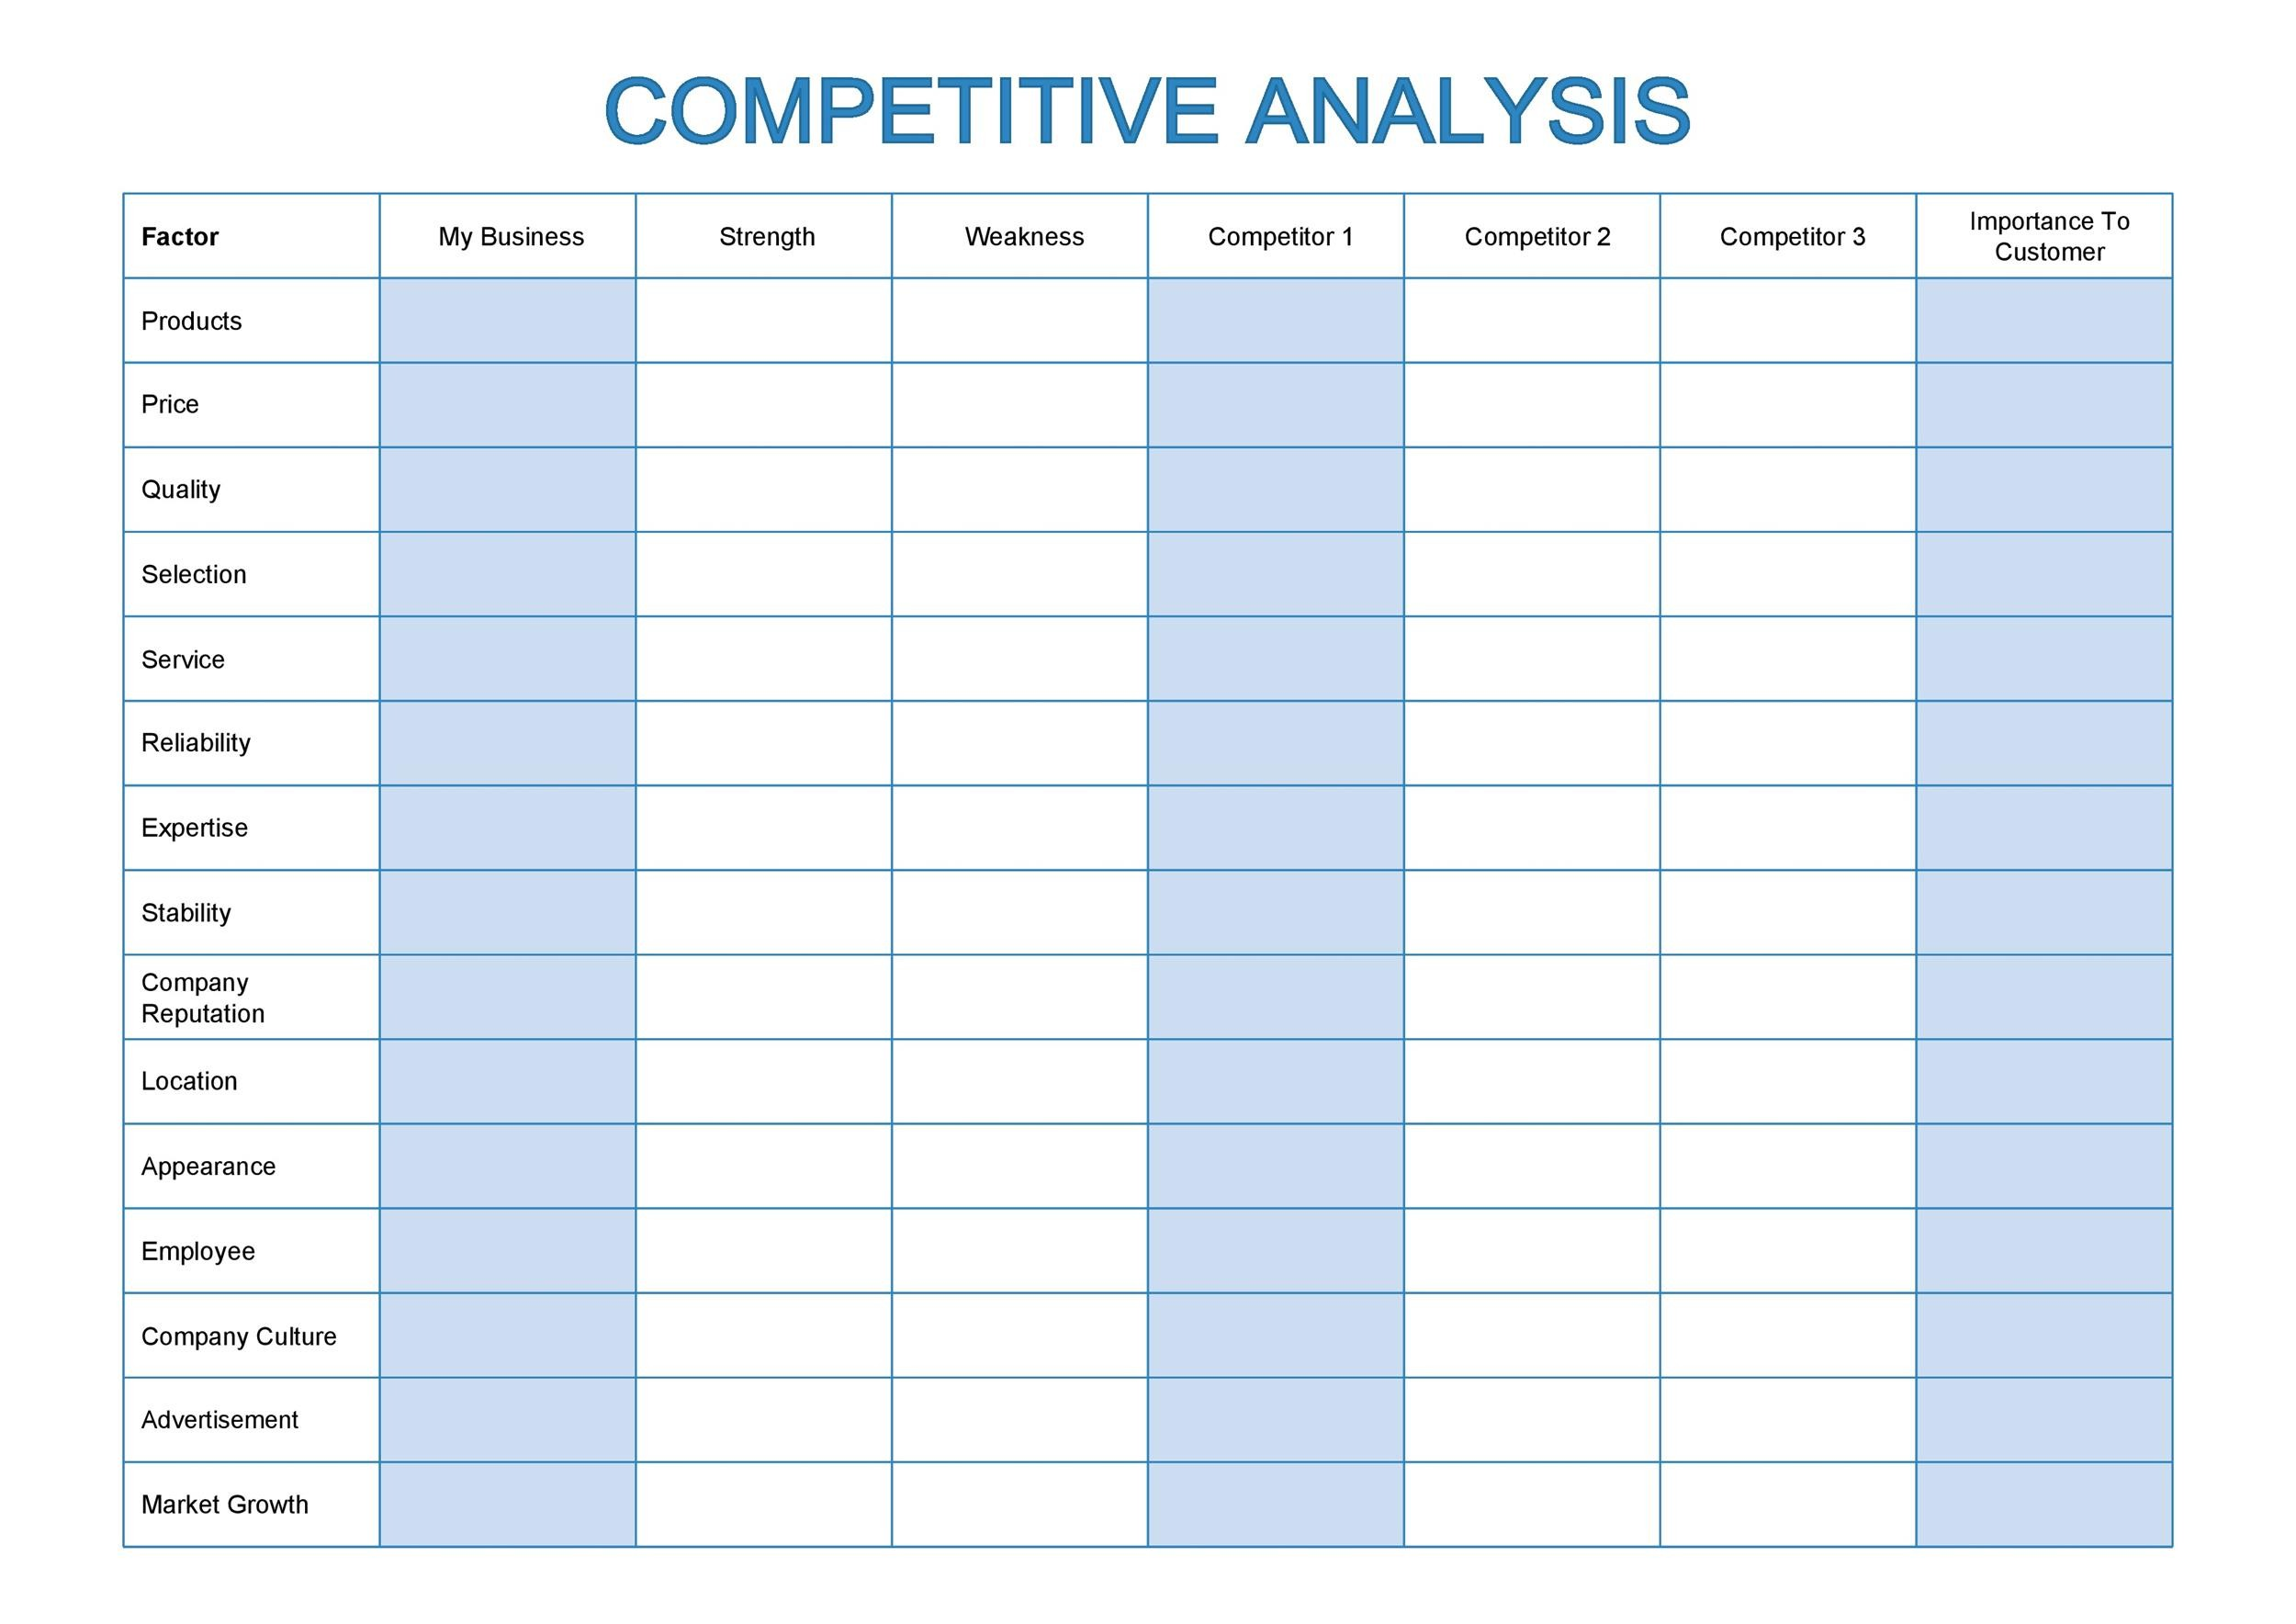 Competitive Analysis Templates - 40 Great Examples [Excel